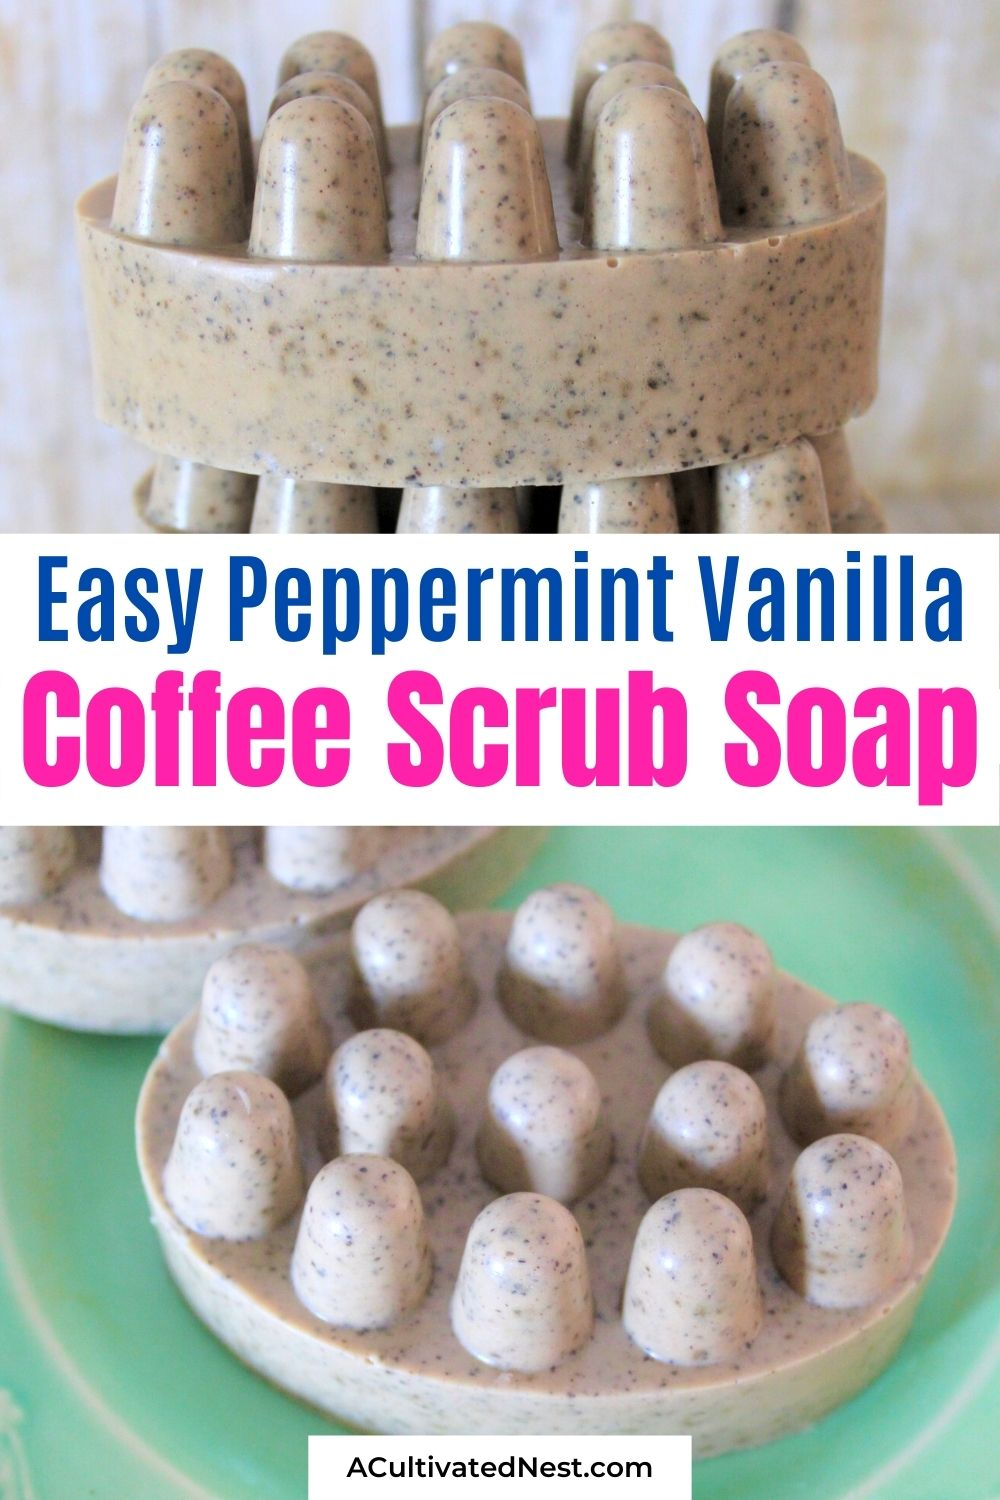 Easy Peppermint Vanilla Coffee Scrub Soap- For a clever way to use up used coffee grounds, you have to make this peppermint vanilla coffee scrub soap! This DIY soap smells amazing, looks fantastic, and makes a lovely homemade gift idea! | DIY gift idea, DIY soap, #craft #homemadeSoap #bodyScrub #homemadeGiftIdeas #ACultivatedNest